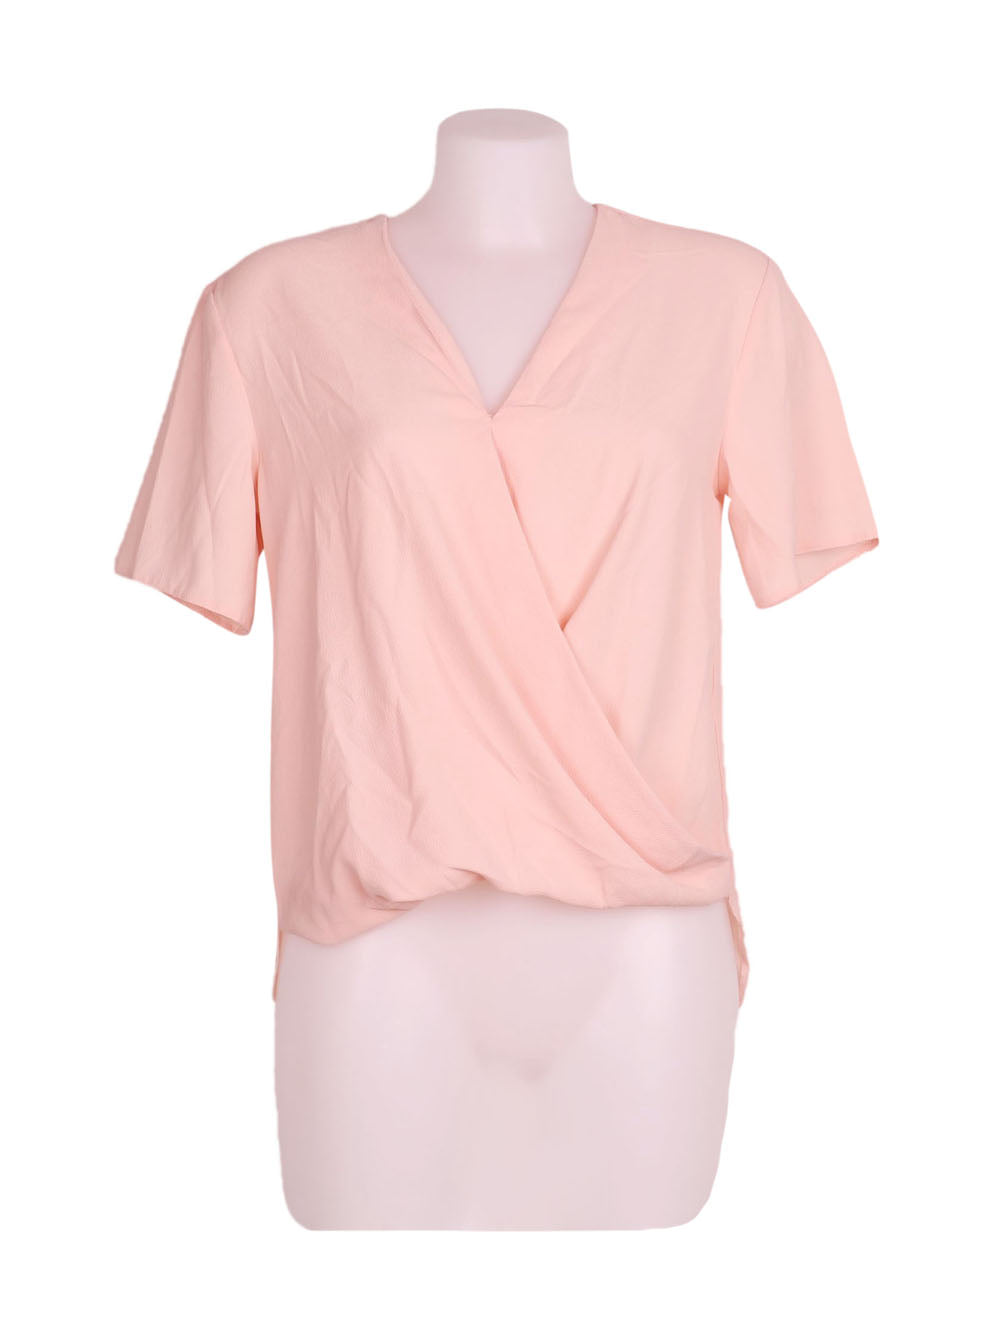 Front photo of Preloved Asos Pink Woman's shirt - size 6/XS